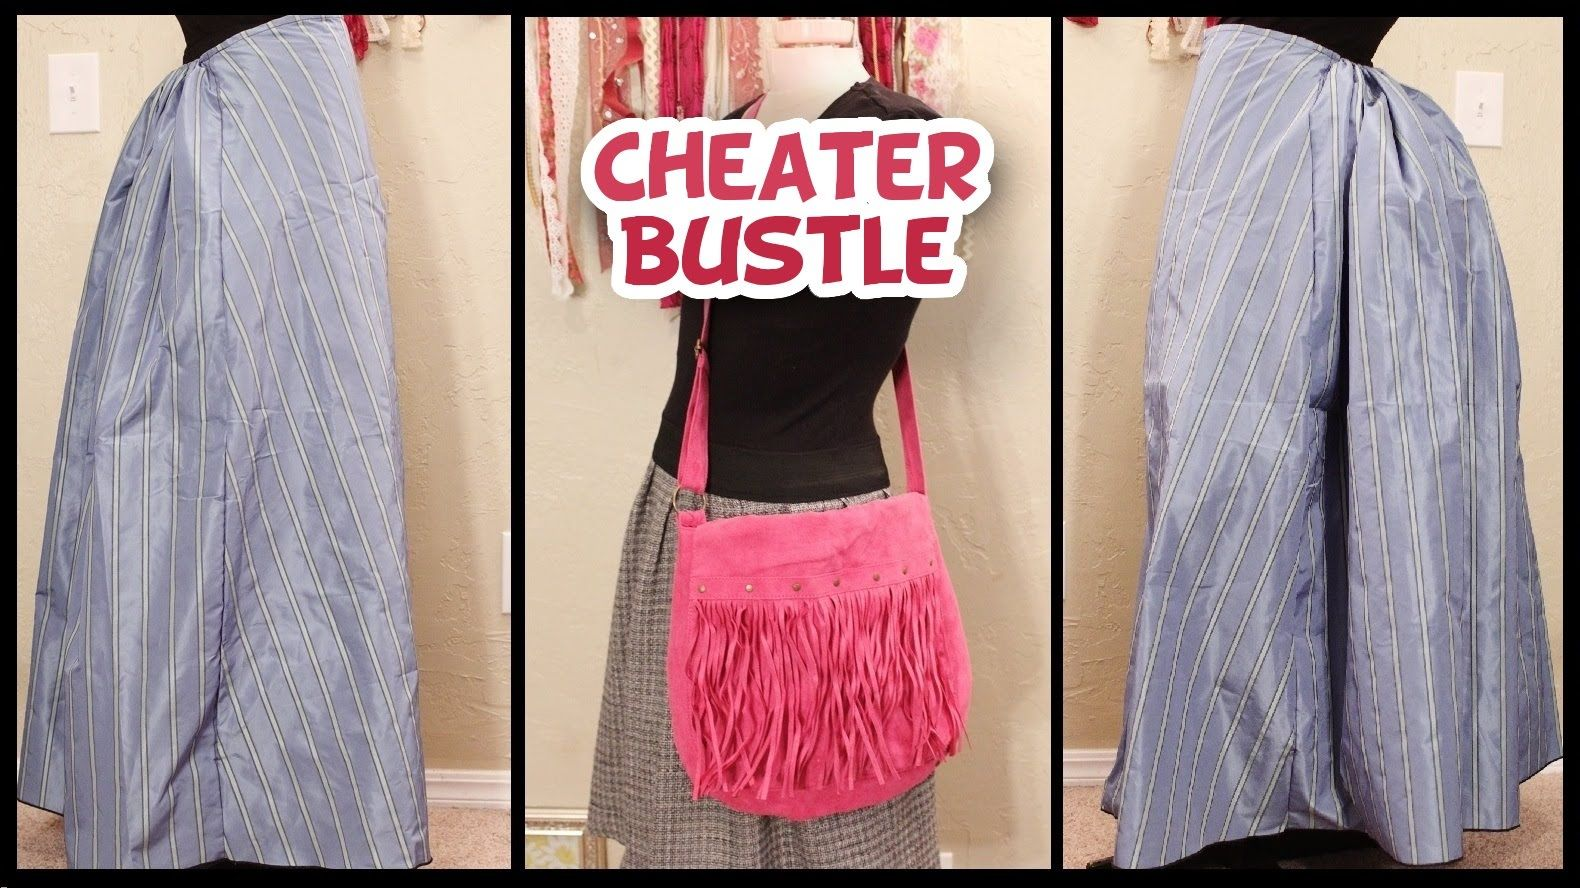 Diy No Sew Cheater Bustle Very Easy Whitney Sews Steampunk Bustle Skirt Diy Skirt Steampunk Diy Costume